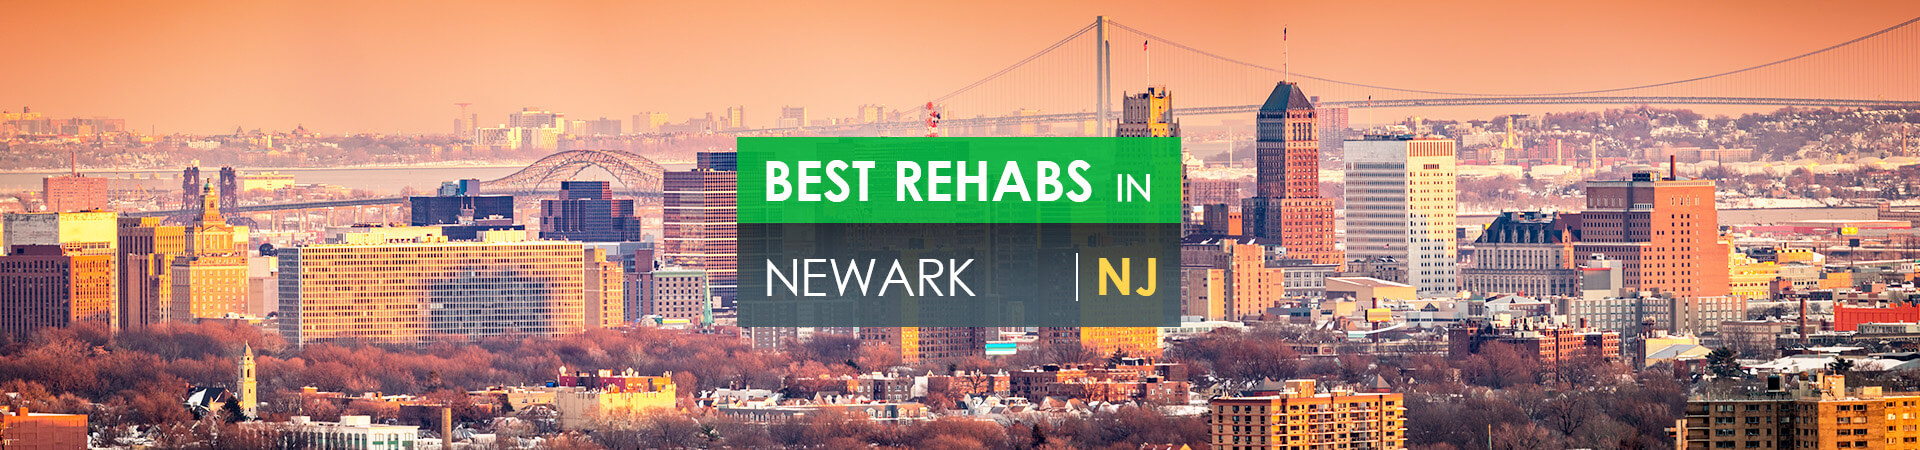 Best rehabs in Newark, NJ